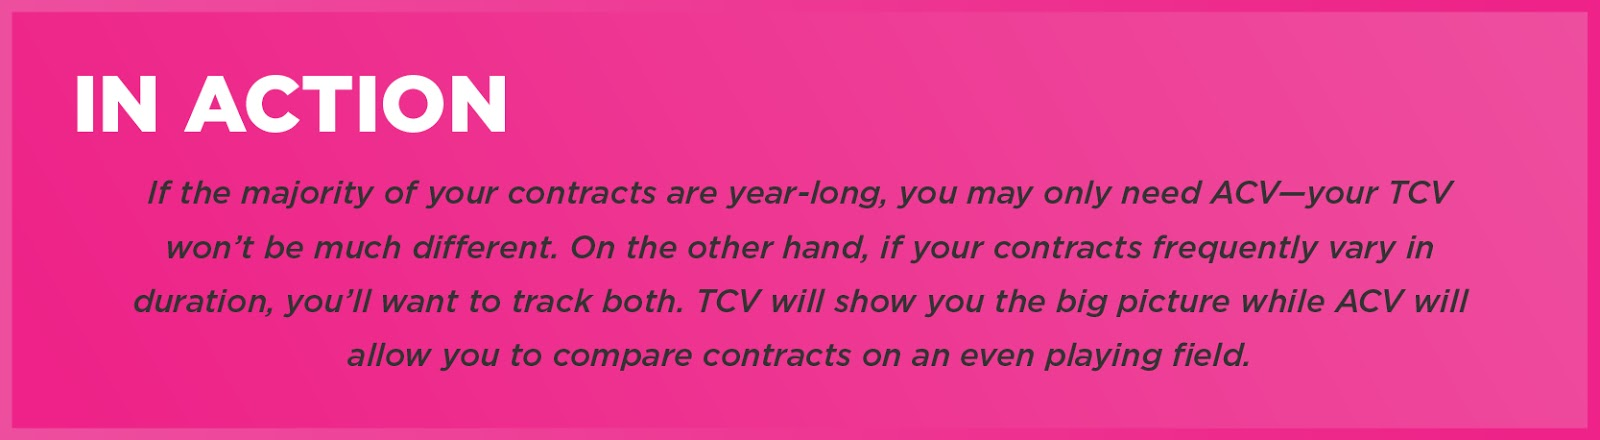 In Action: If the majority of your contracts are year-long, you may only need ACV—your TCV won't be much different. On the other hand, if your contracts frequently vary in duration, you'll want to track both. TCV will show you the big picture while ACV will allow you to compare contracts on an even playing field.